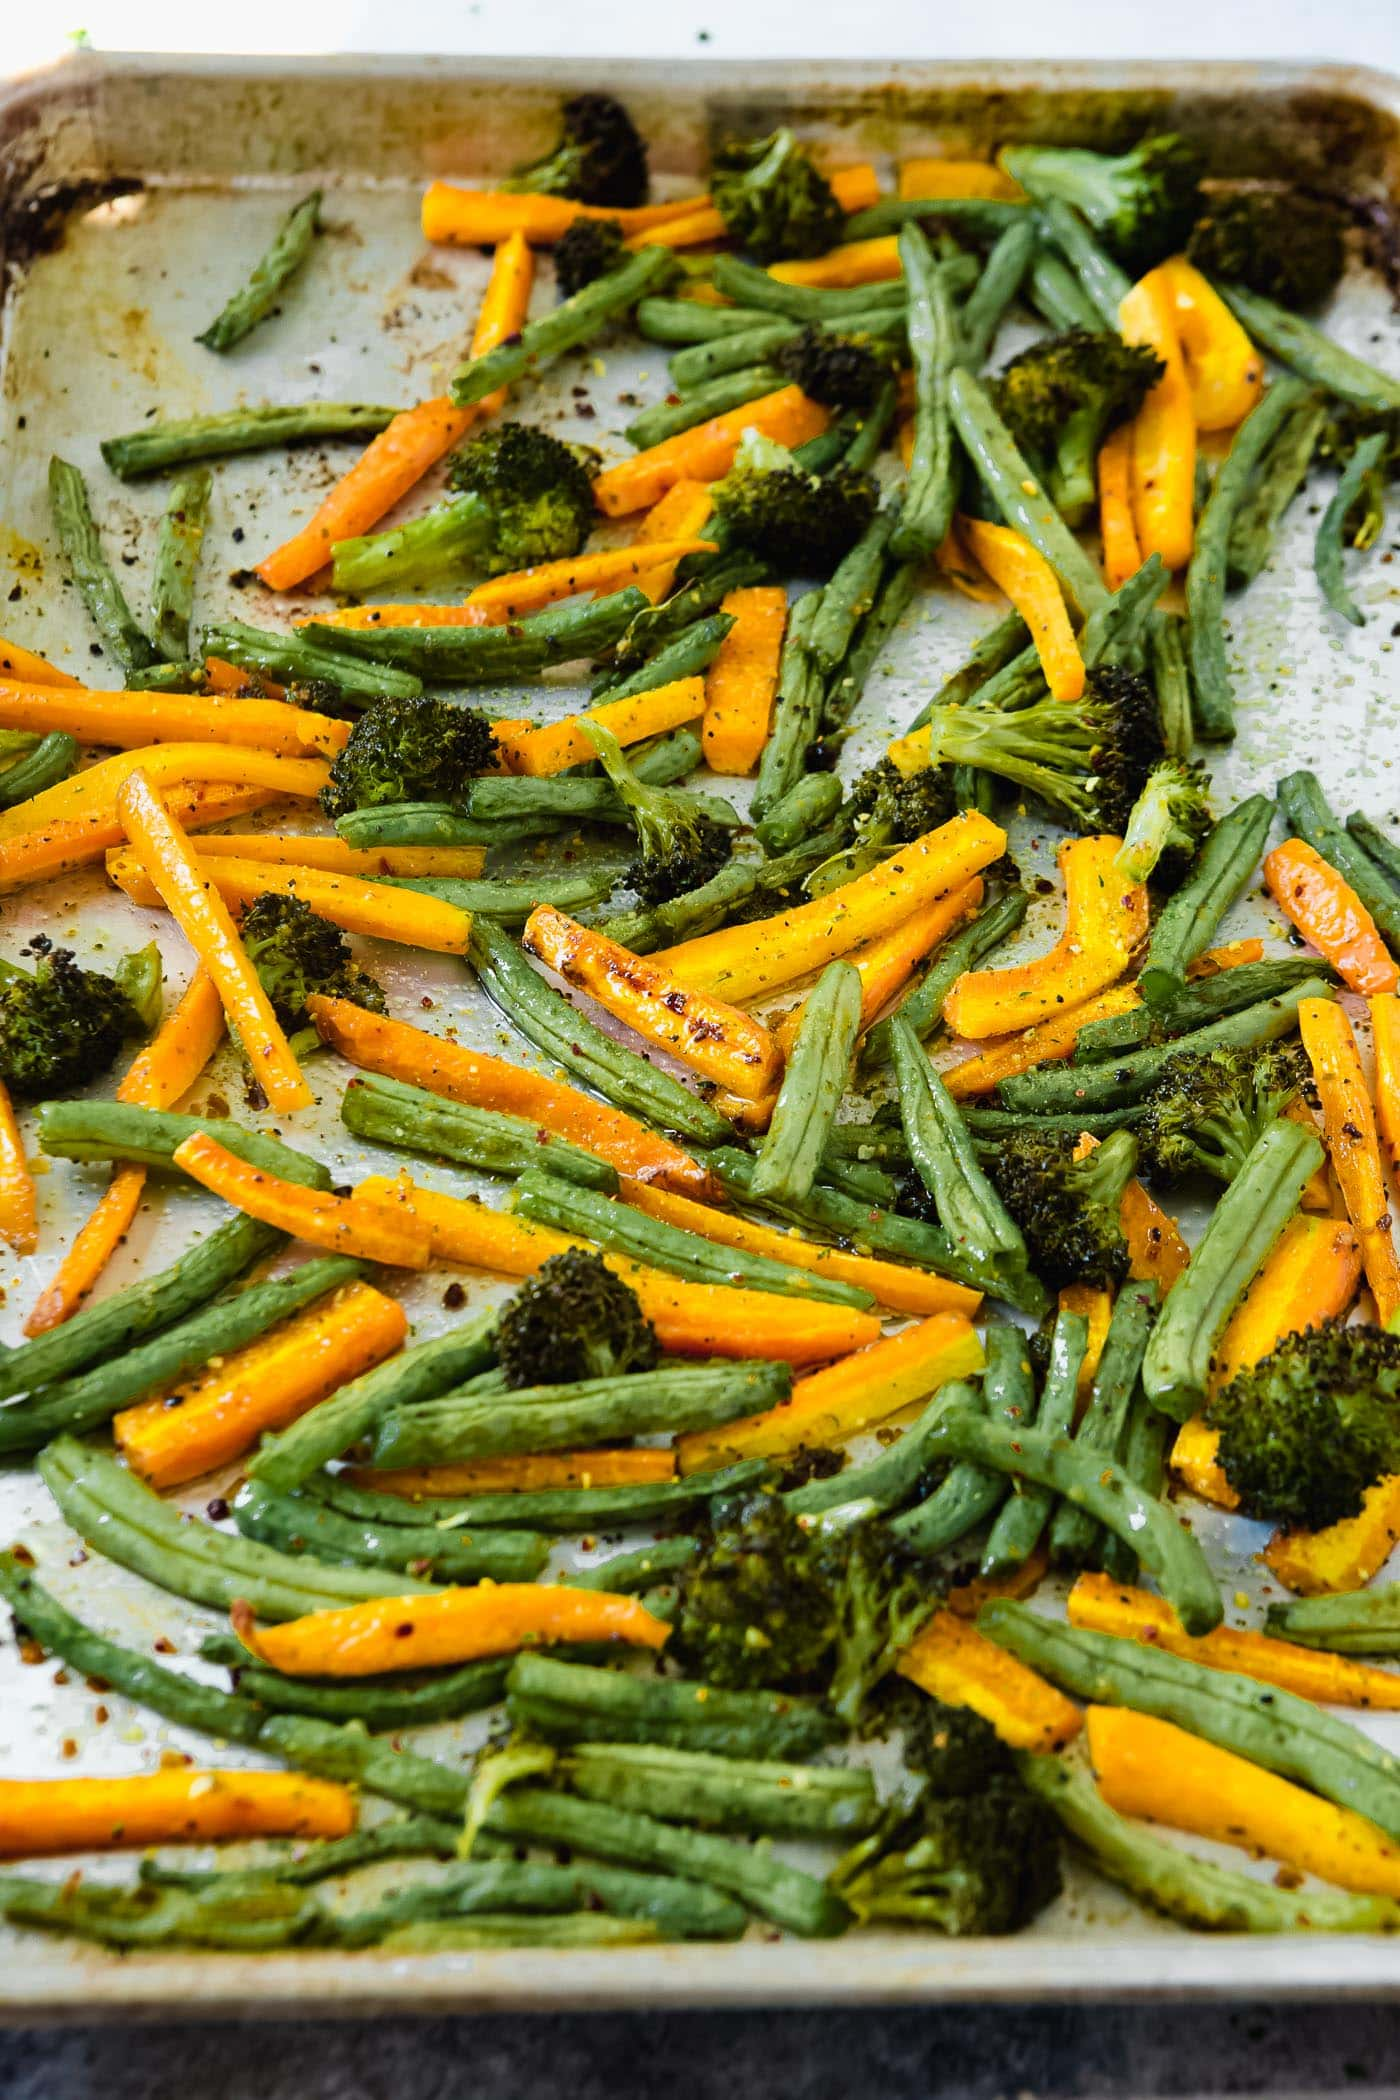 a photo of roasted carrot sticks, green beans and broccoli on a baking sheet.